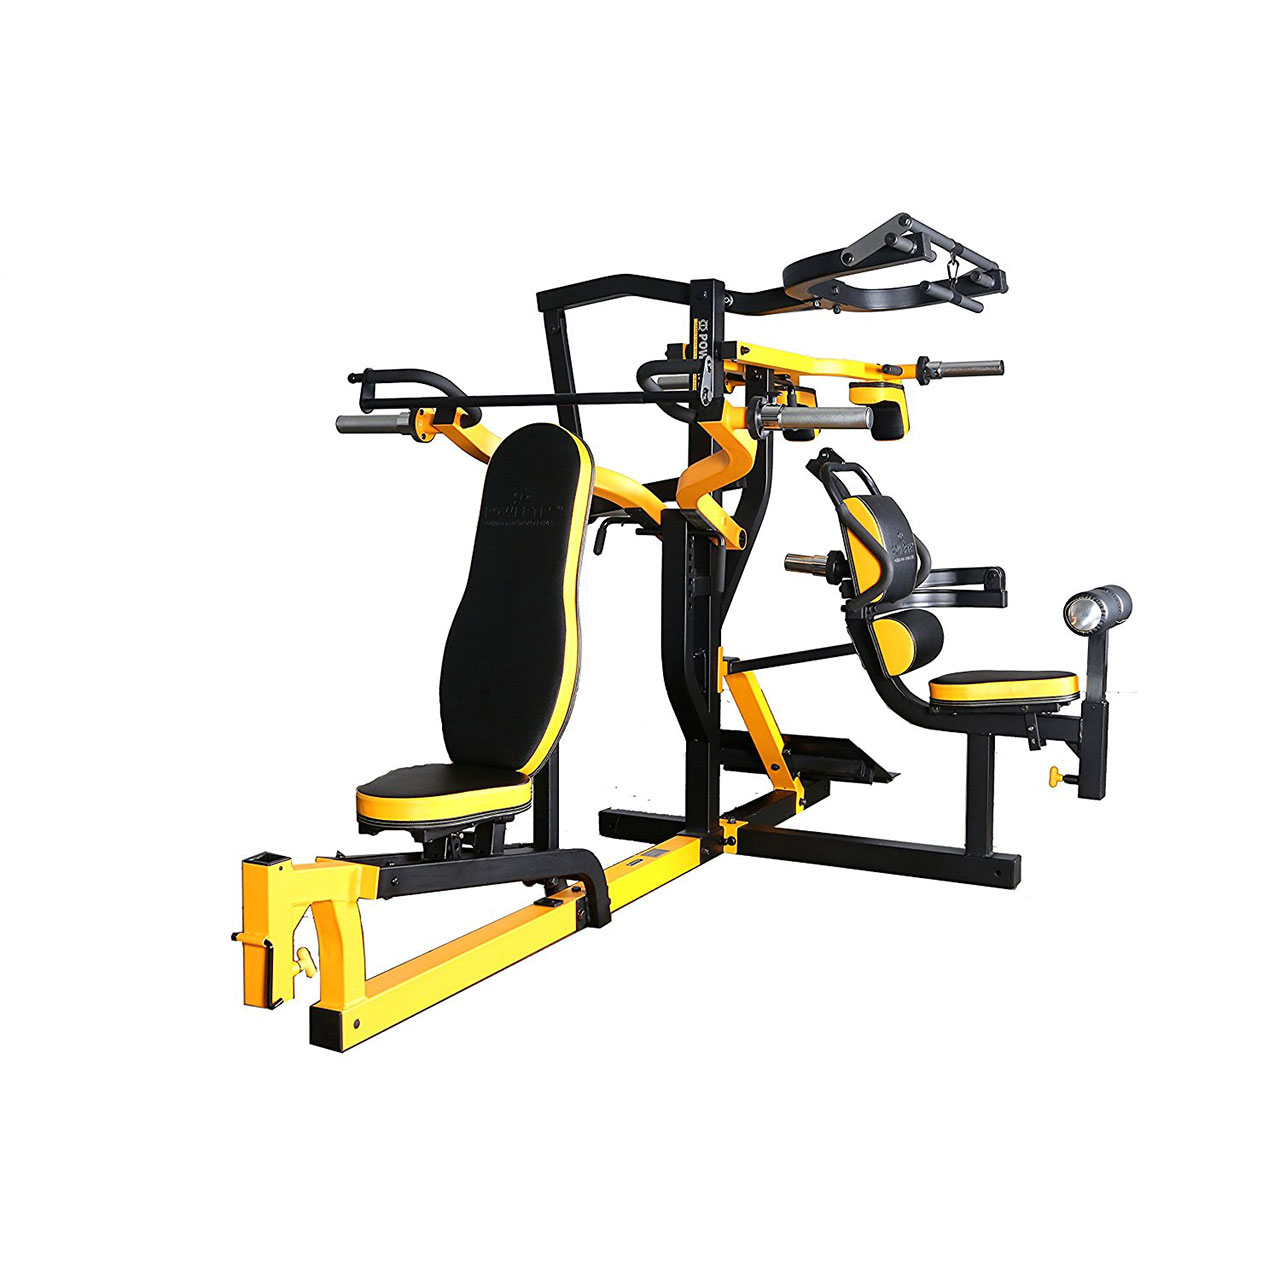 Powertec Workbench Multi System Black Yellow by Powertec